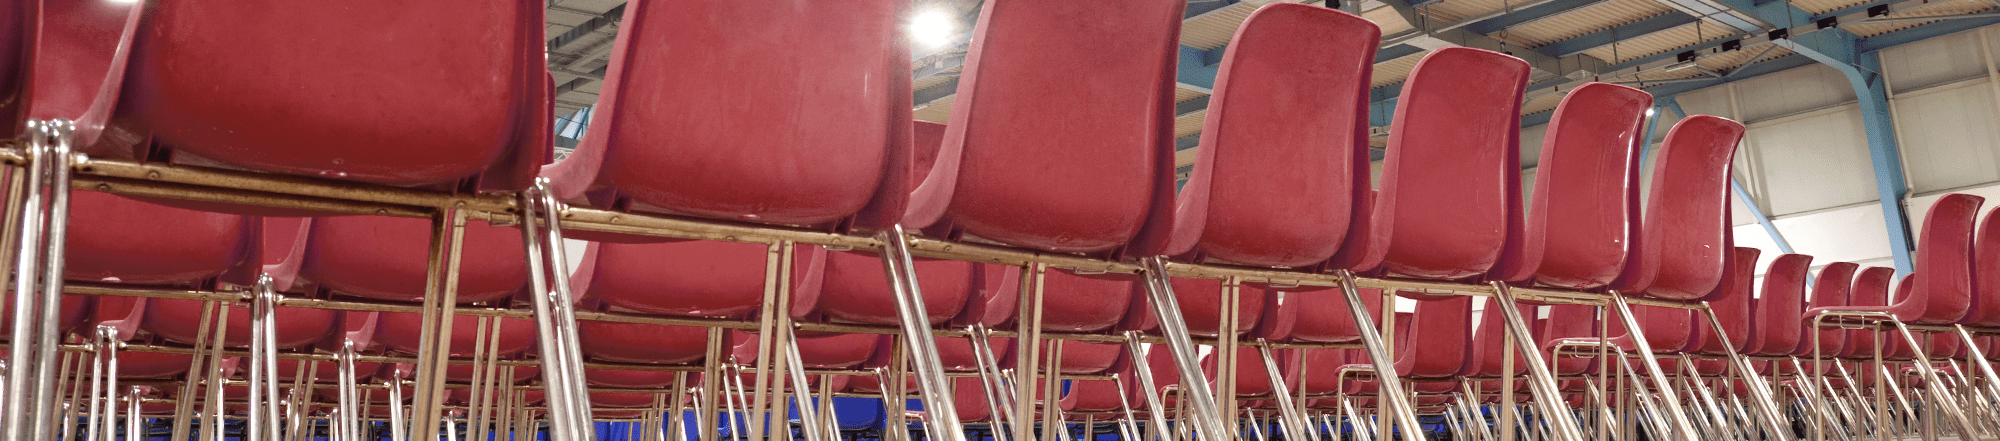 rows of red chairs